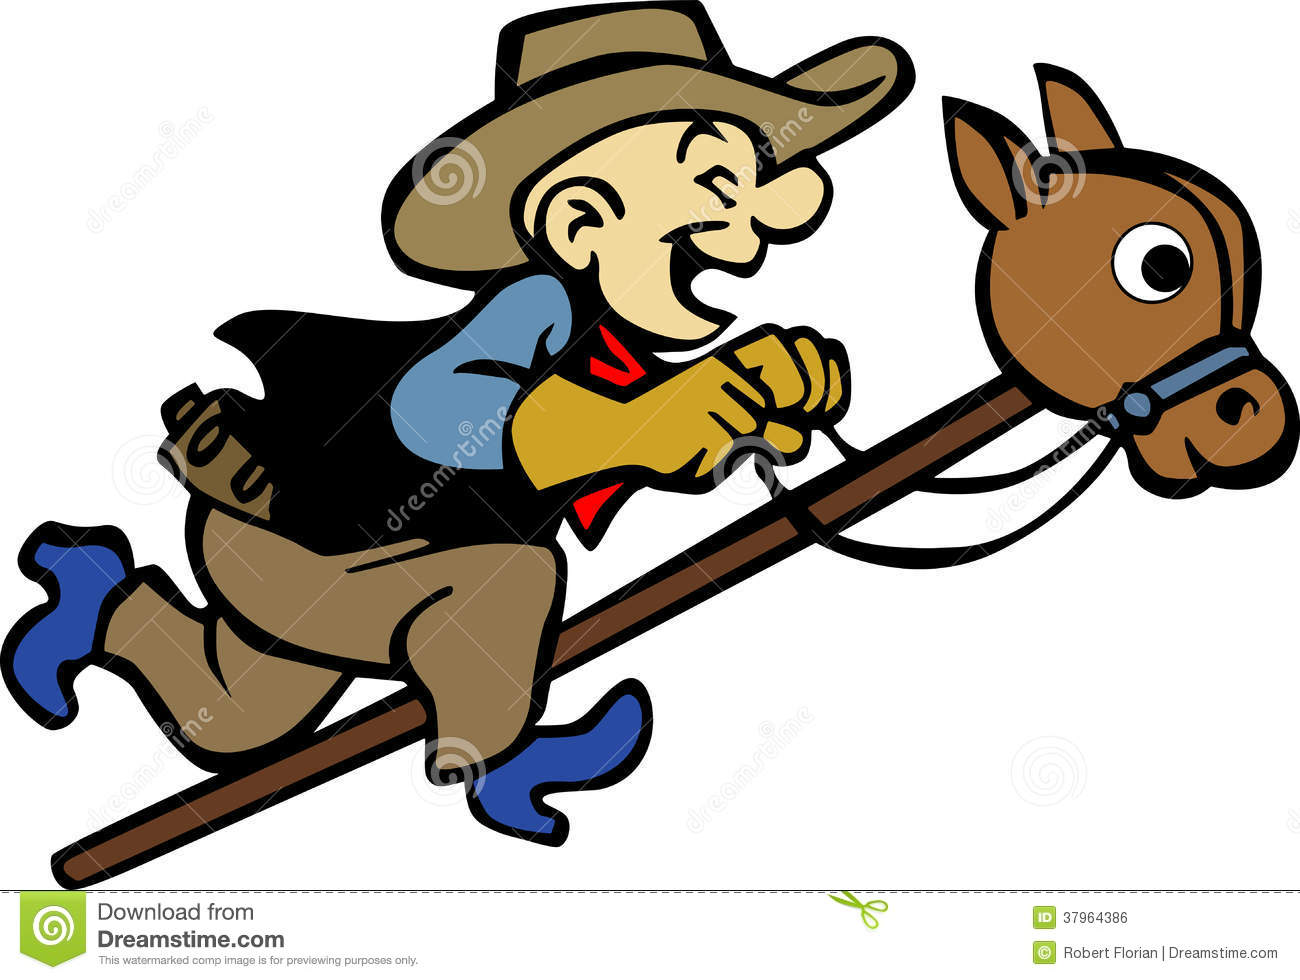 Playing Cowboy Illustration Royalty Free Stock Image - Image: 37964386